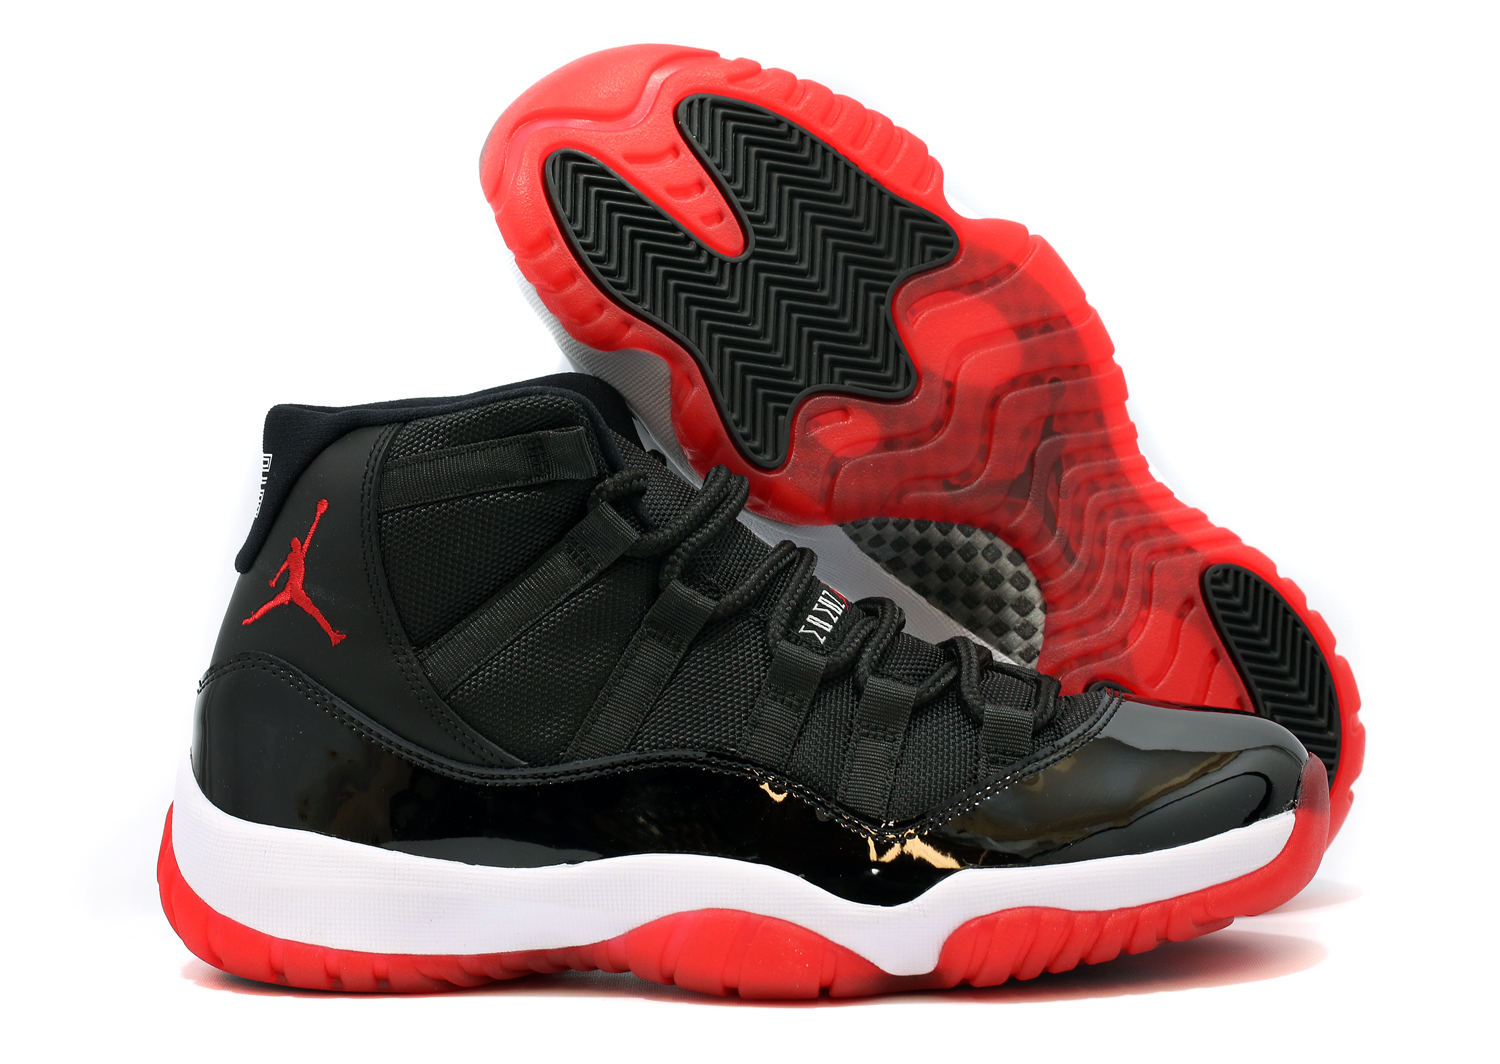 Air Jordan XI (11) 'Playoffs' @ AWOL